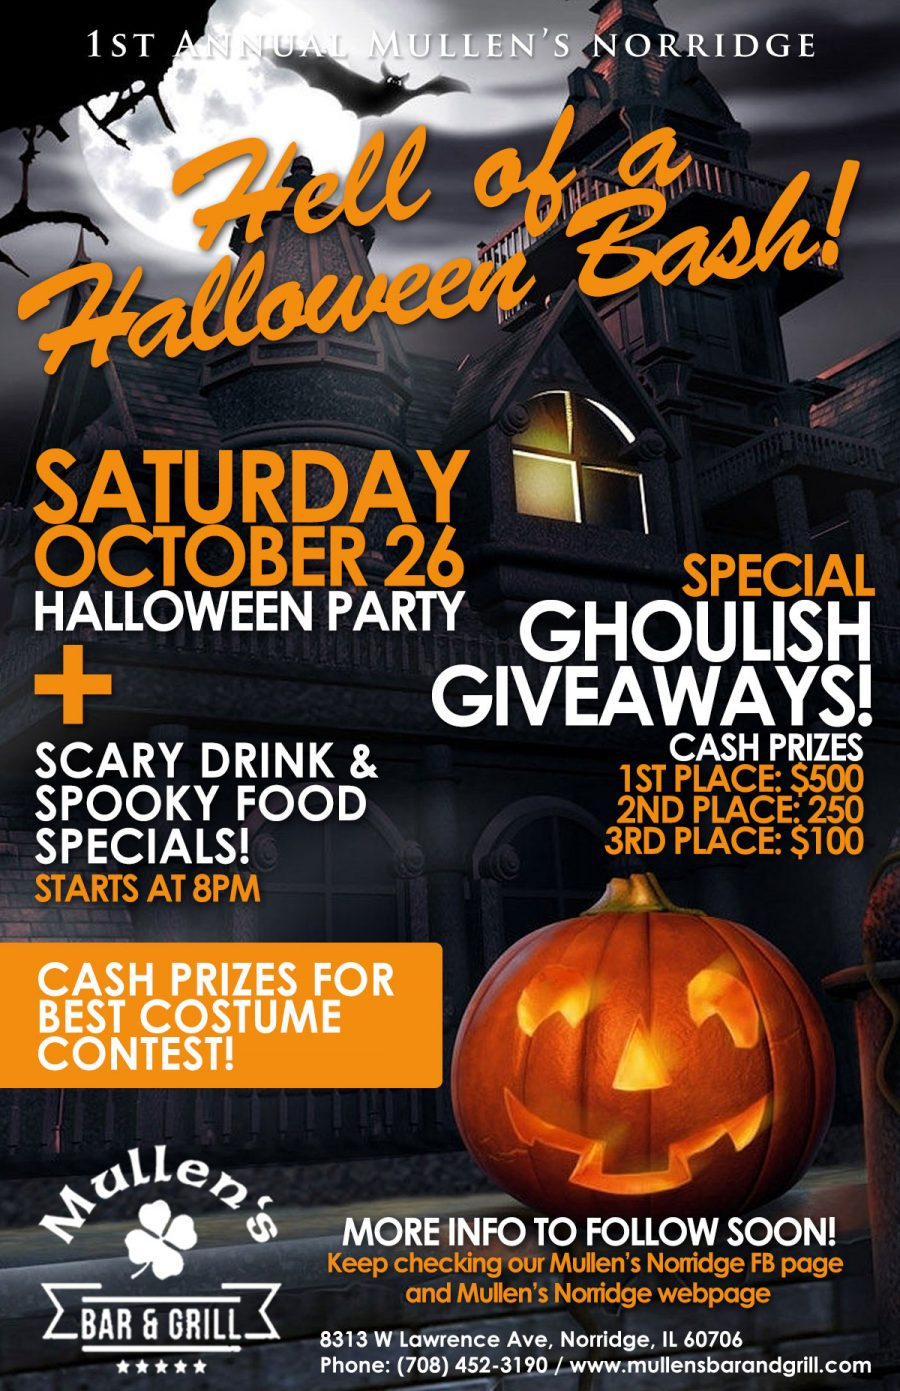 SATURDAY, OCTOBER 26TH – HELL OF A HALLOWEEN BASH